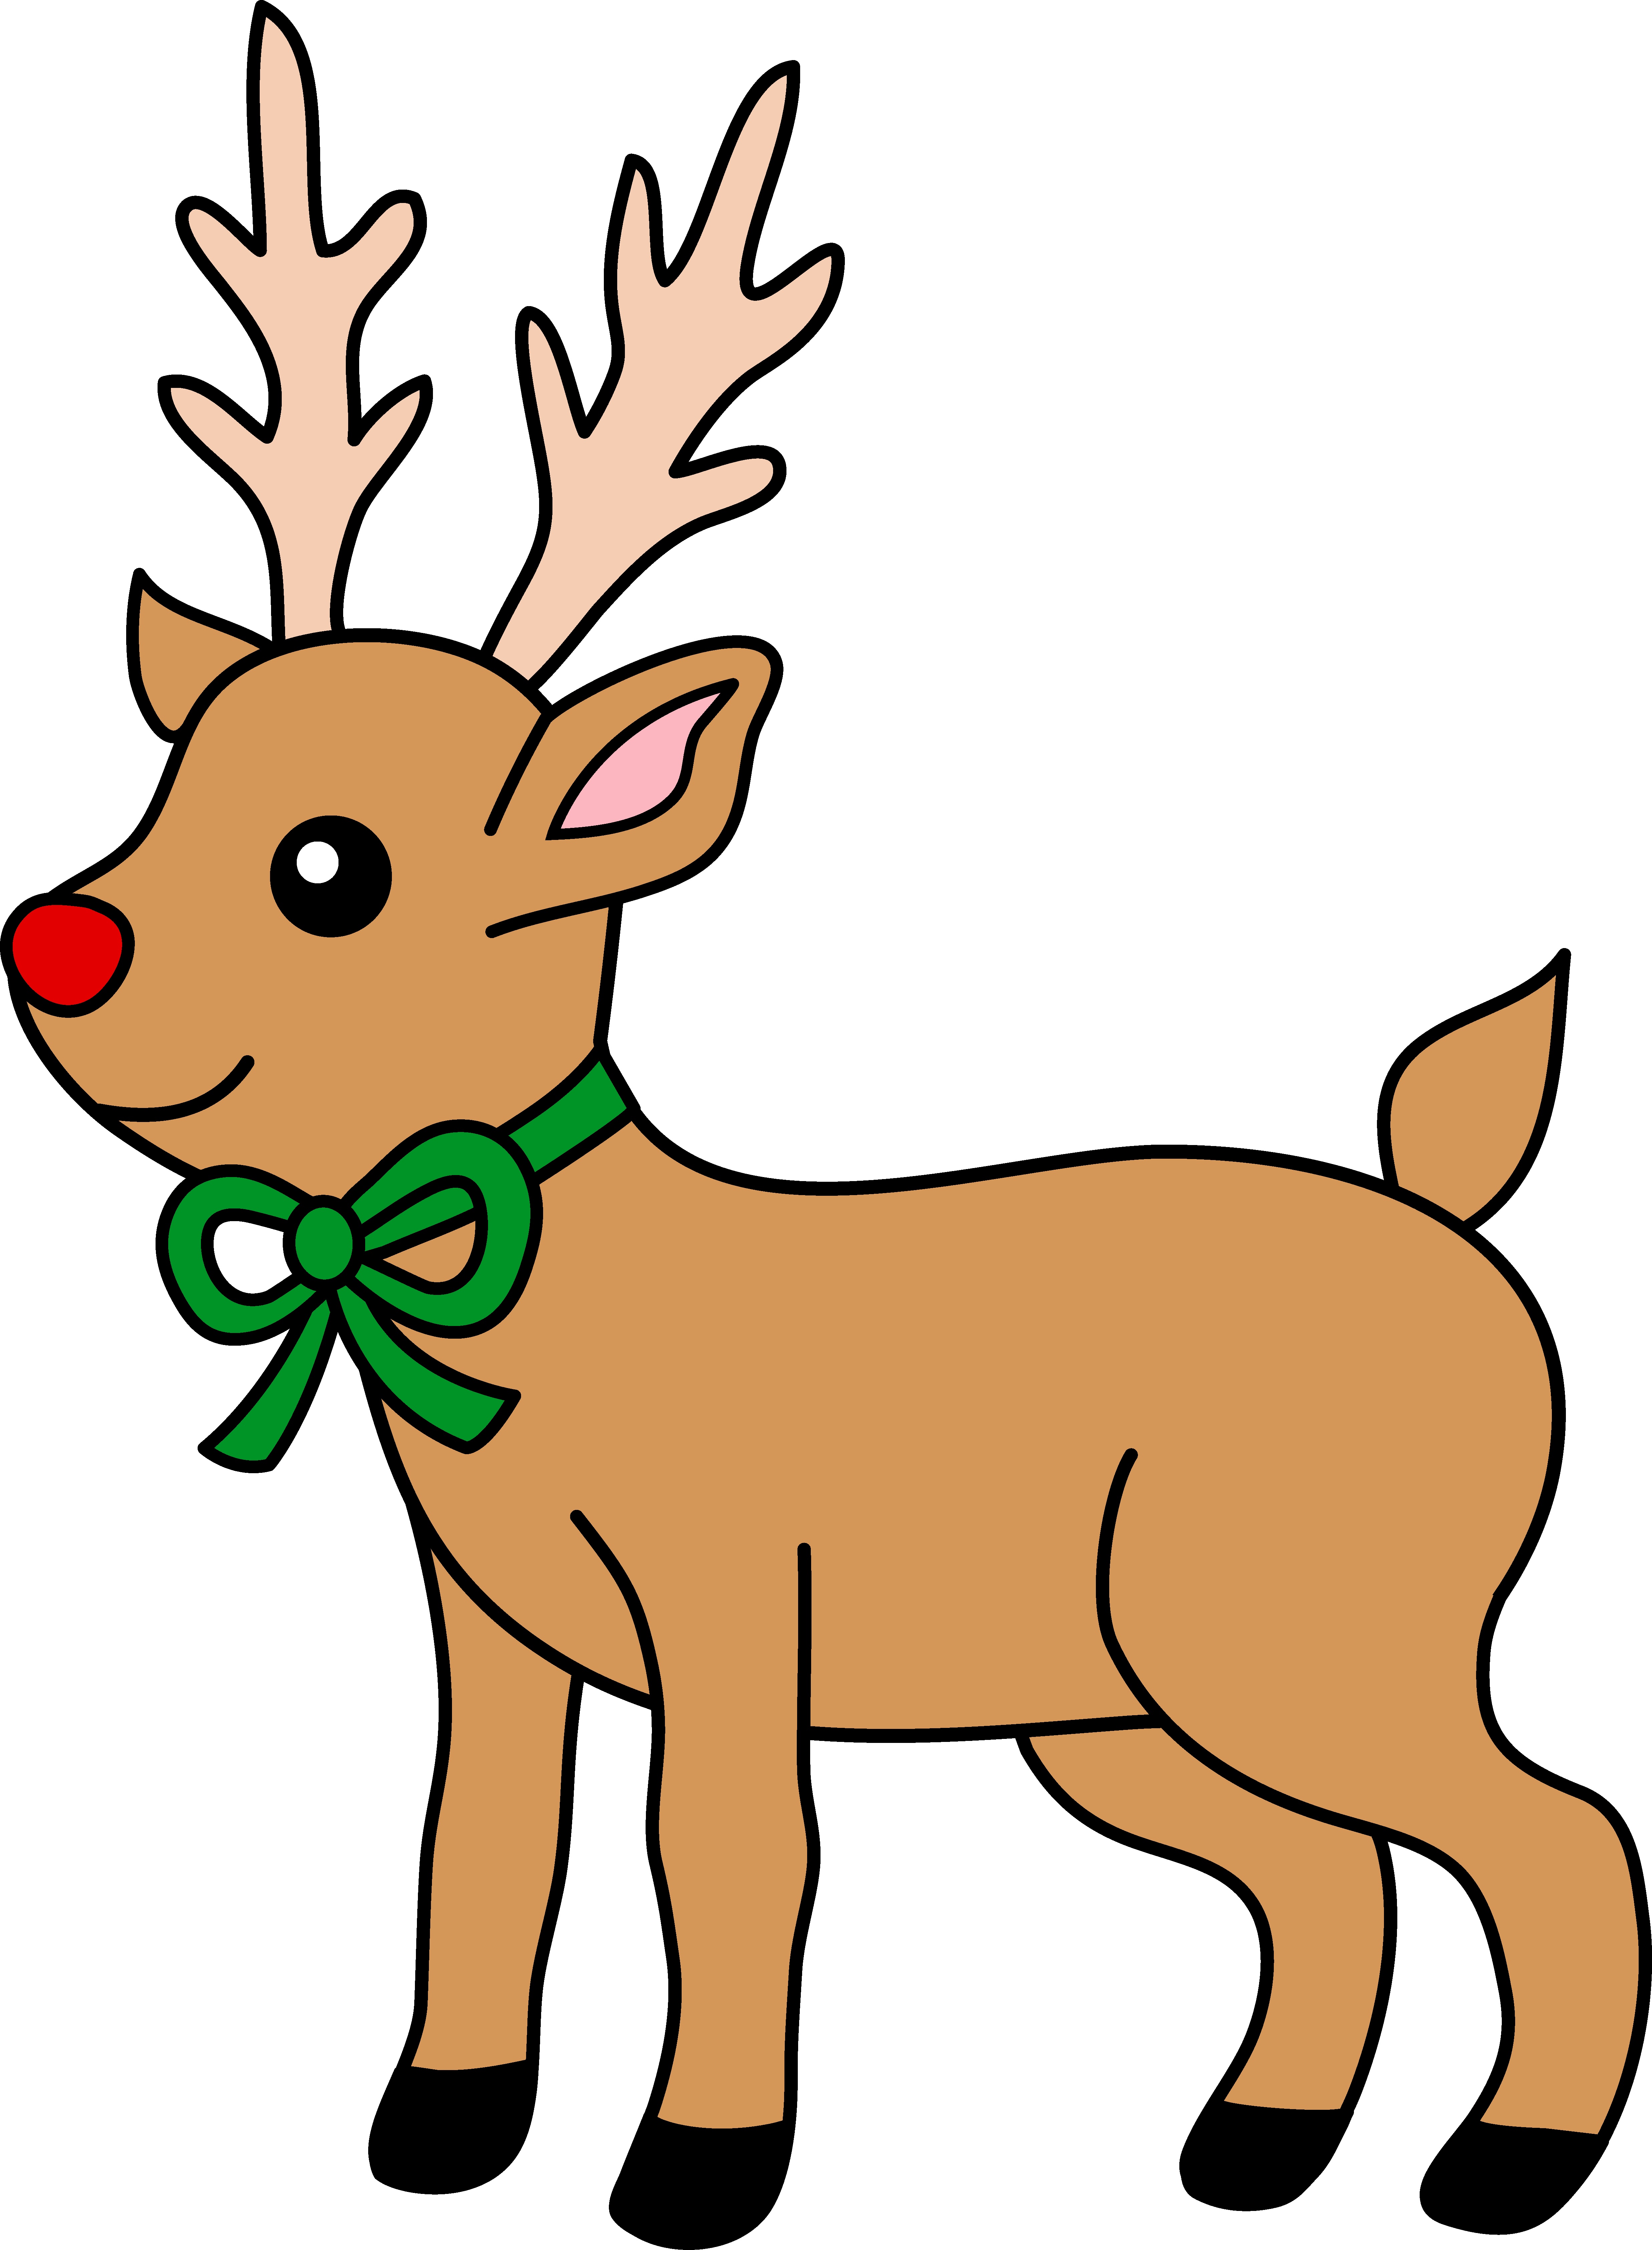 Clipart reindeer christmas jpg royalty free download Reindeer Clipart jpg royalty free download